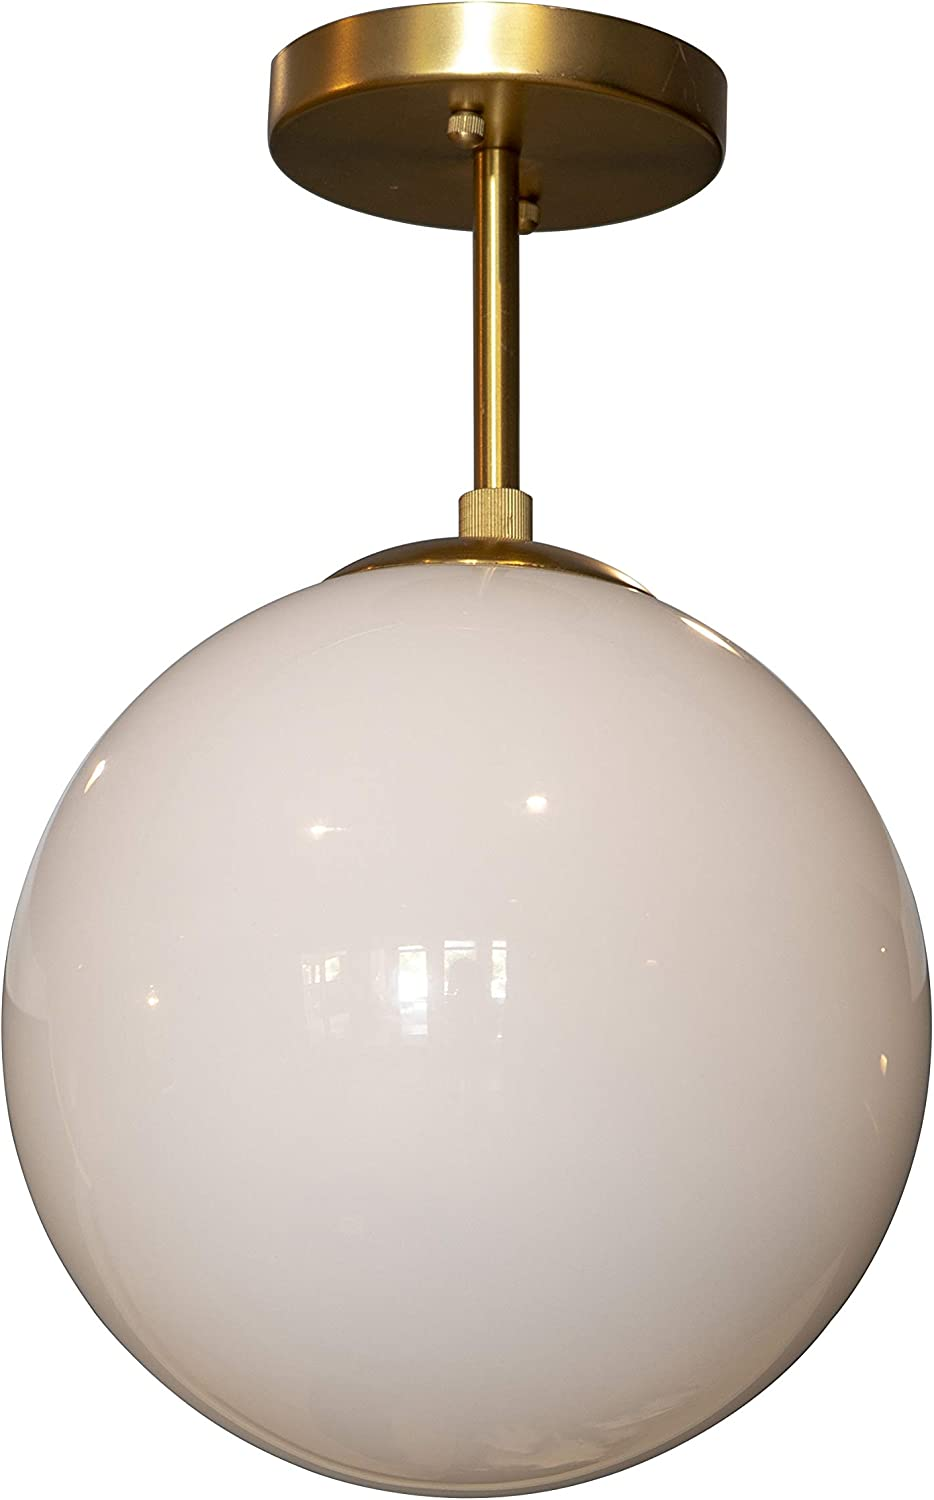 Décor Therapy CH1911 Michael Milk Glass 1 Semi Flush Mount Ceiling Light, Antique Brass